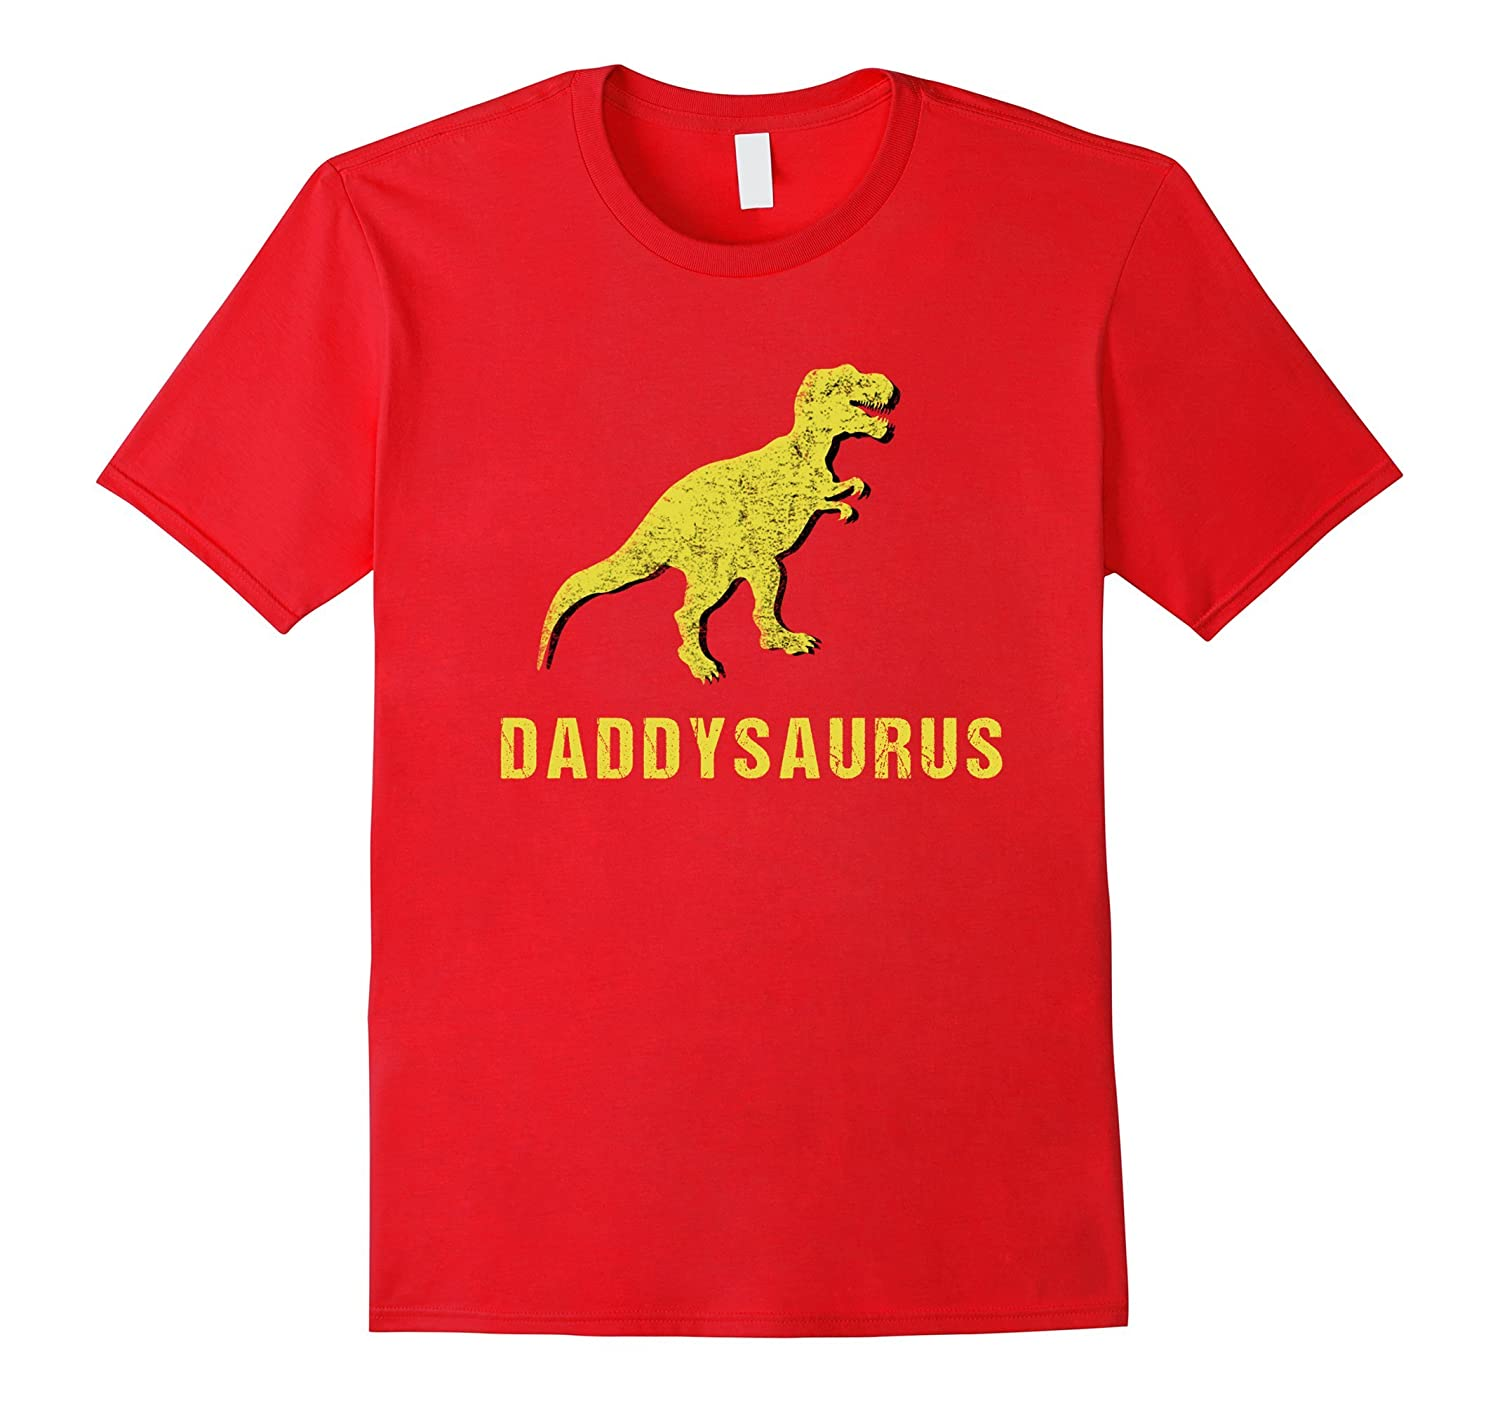 Daddysaurus Shirt Funny Fathers Day Gift from Kids Toddler-PL